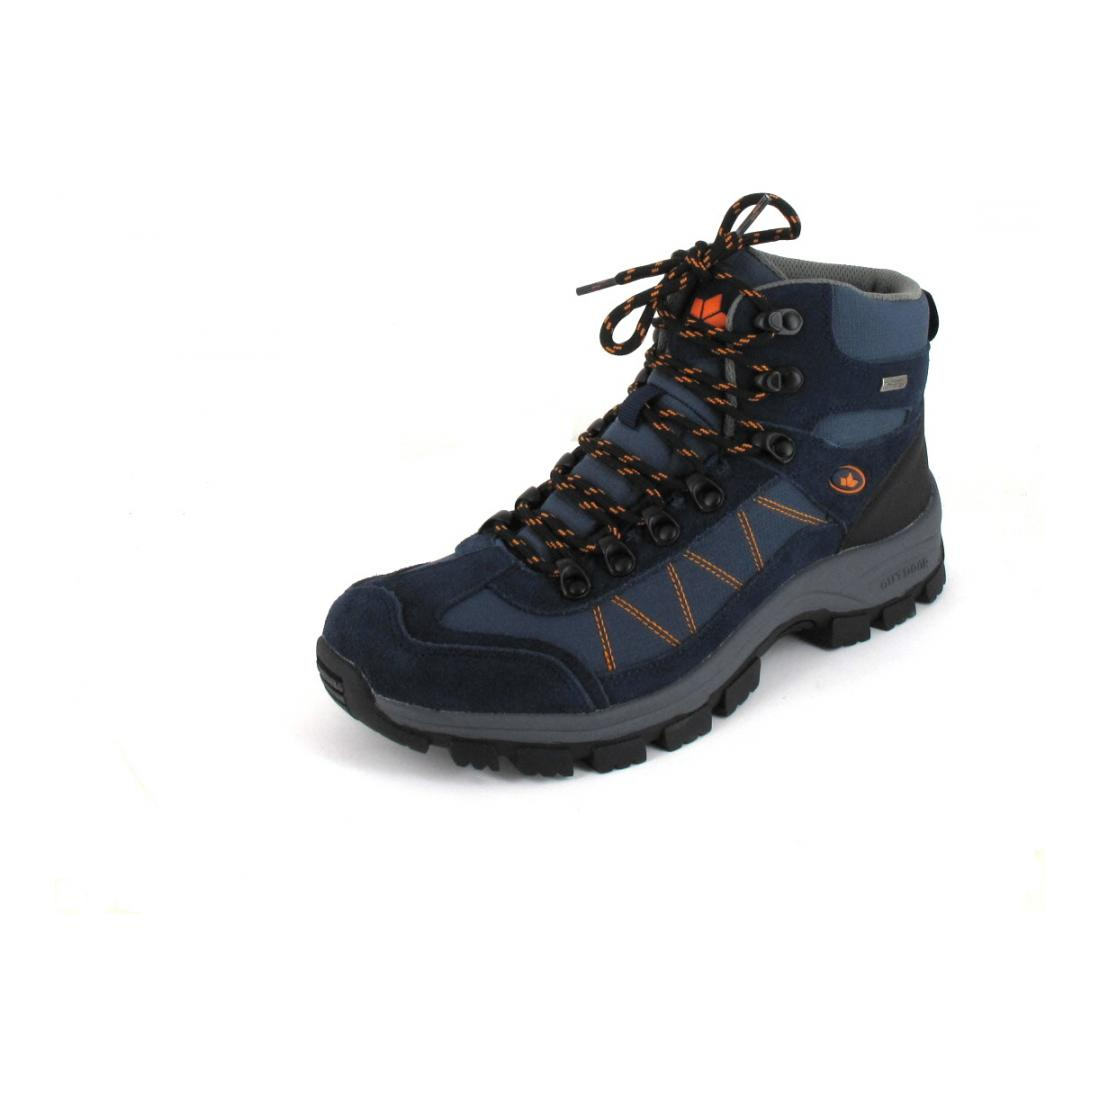 Geka Outdoor Stiefel Stateline High